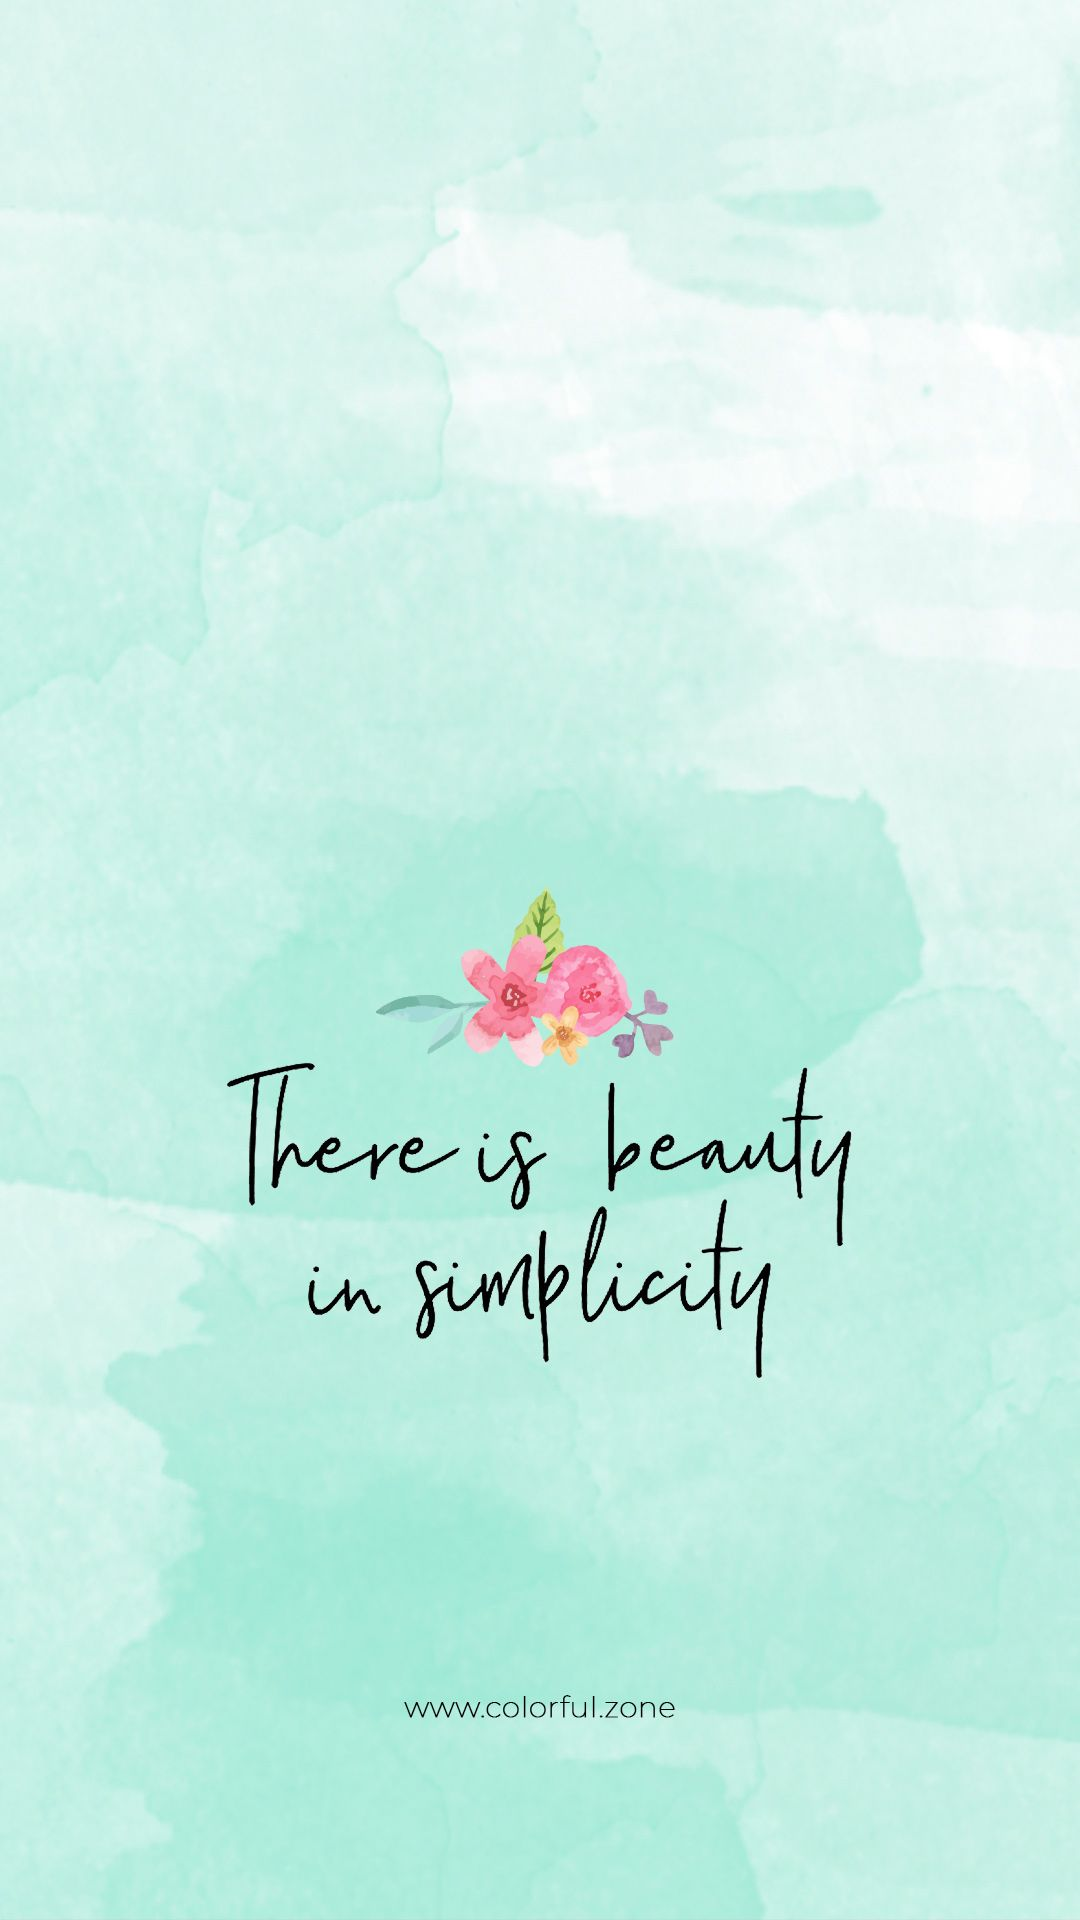 Free Colorful Smartphone Wallpaper - There is beau